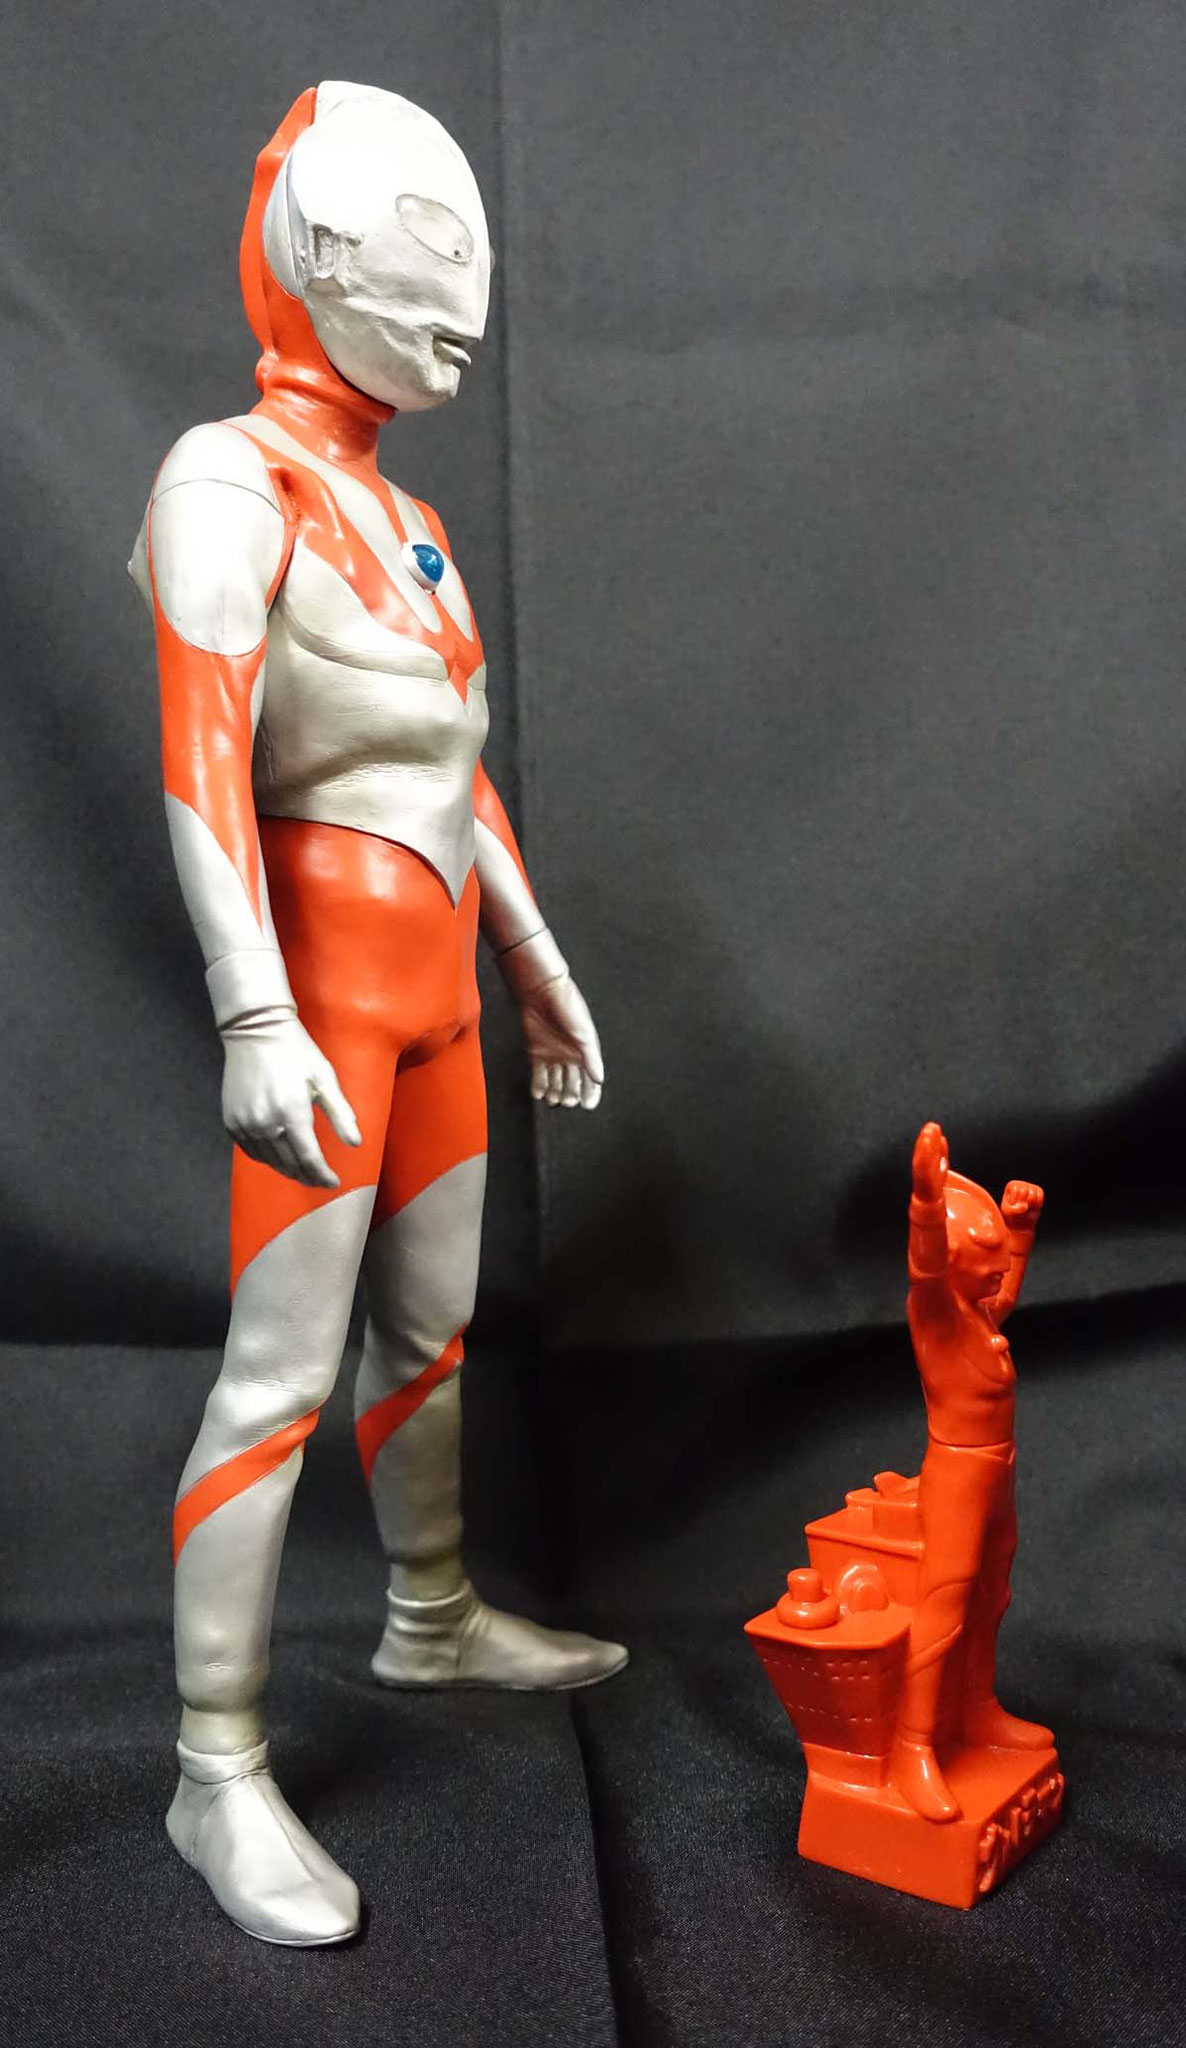 ウルトラマン Type A ©円谷プロ( © Tsuburaya Productions Co.,Ltd.All rights reserved.)